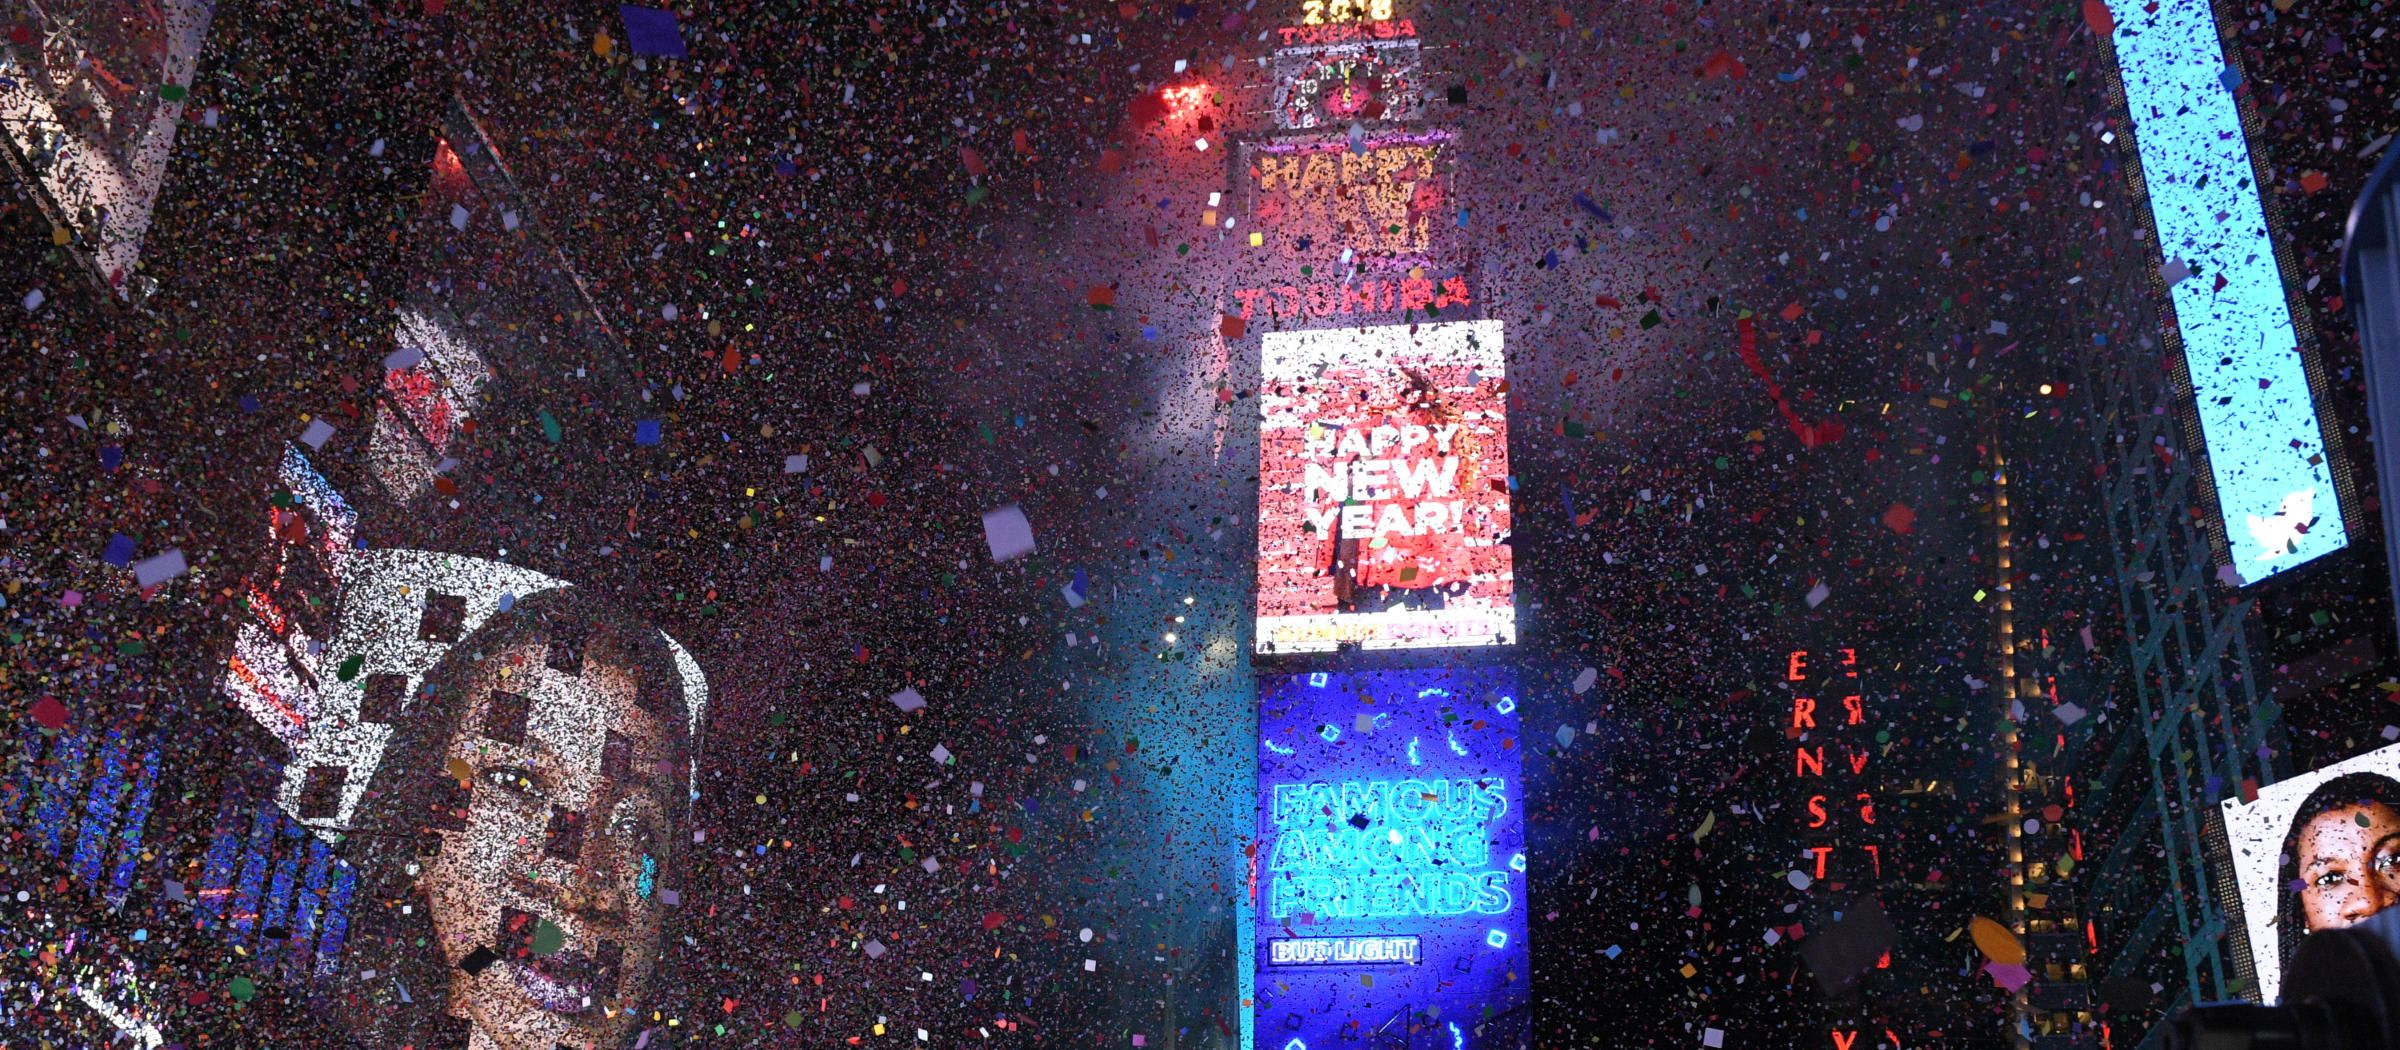 How To Watch The New Year S Eve Ball Drop On Tv And Online Tv Guide New Years Eve Ball Ball Drop Tv Guide